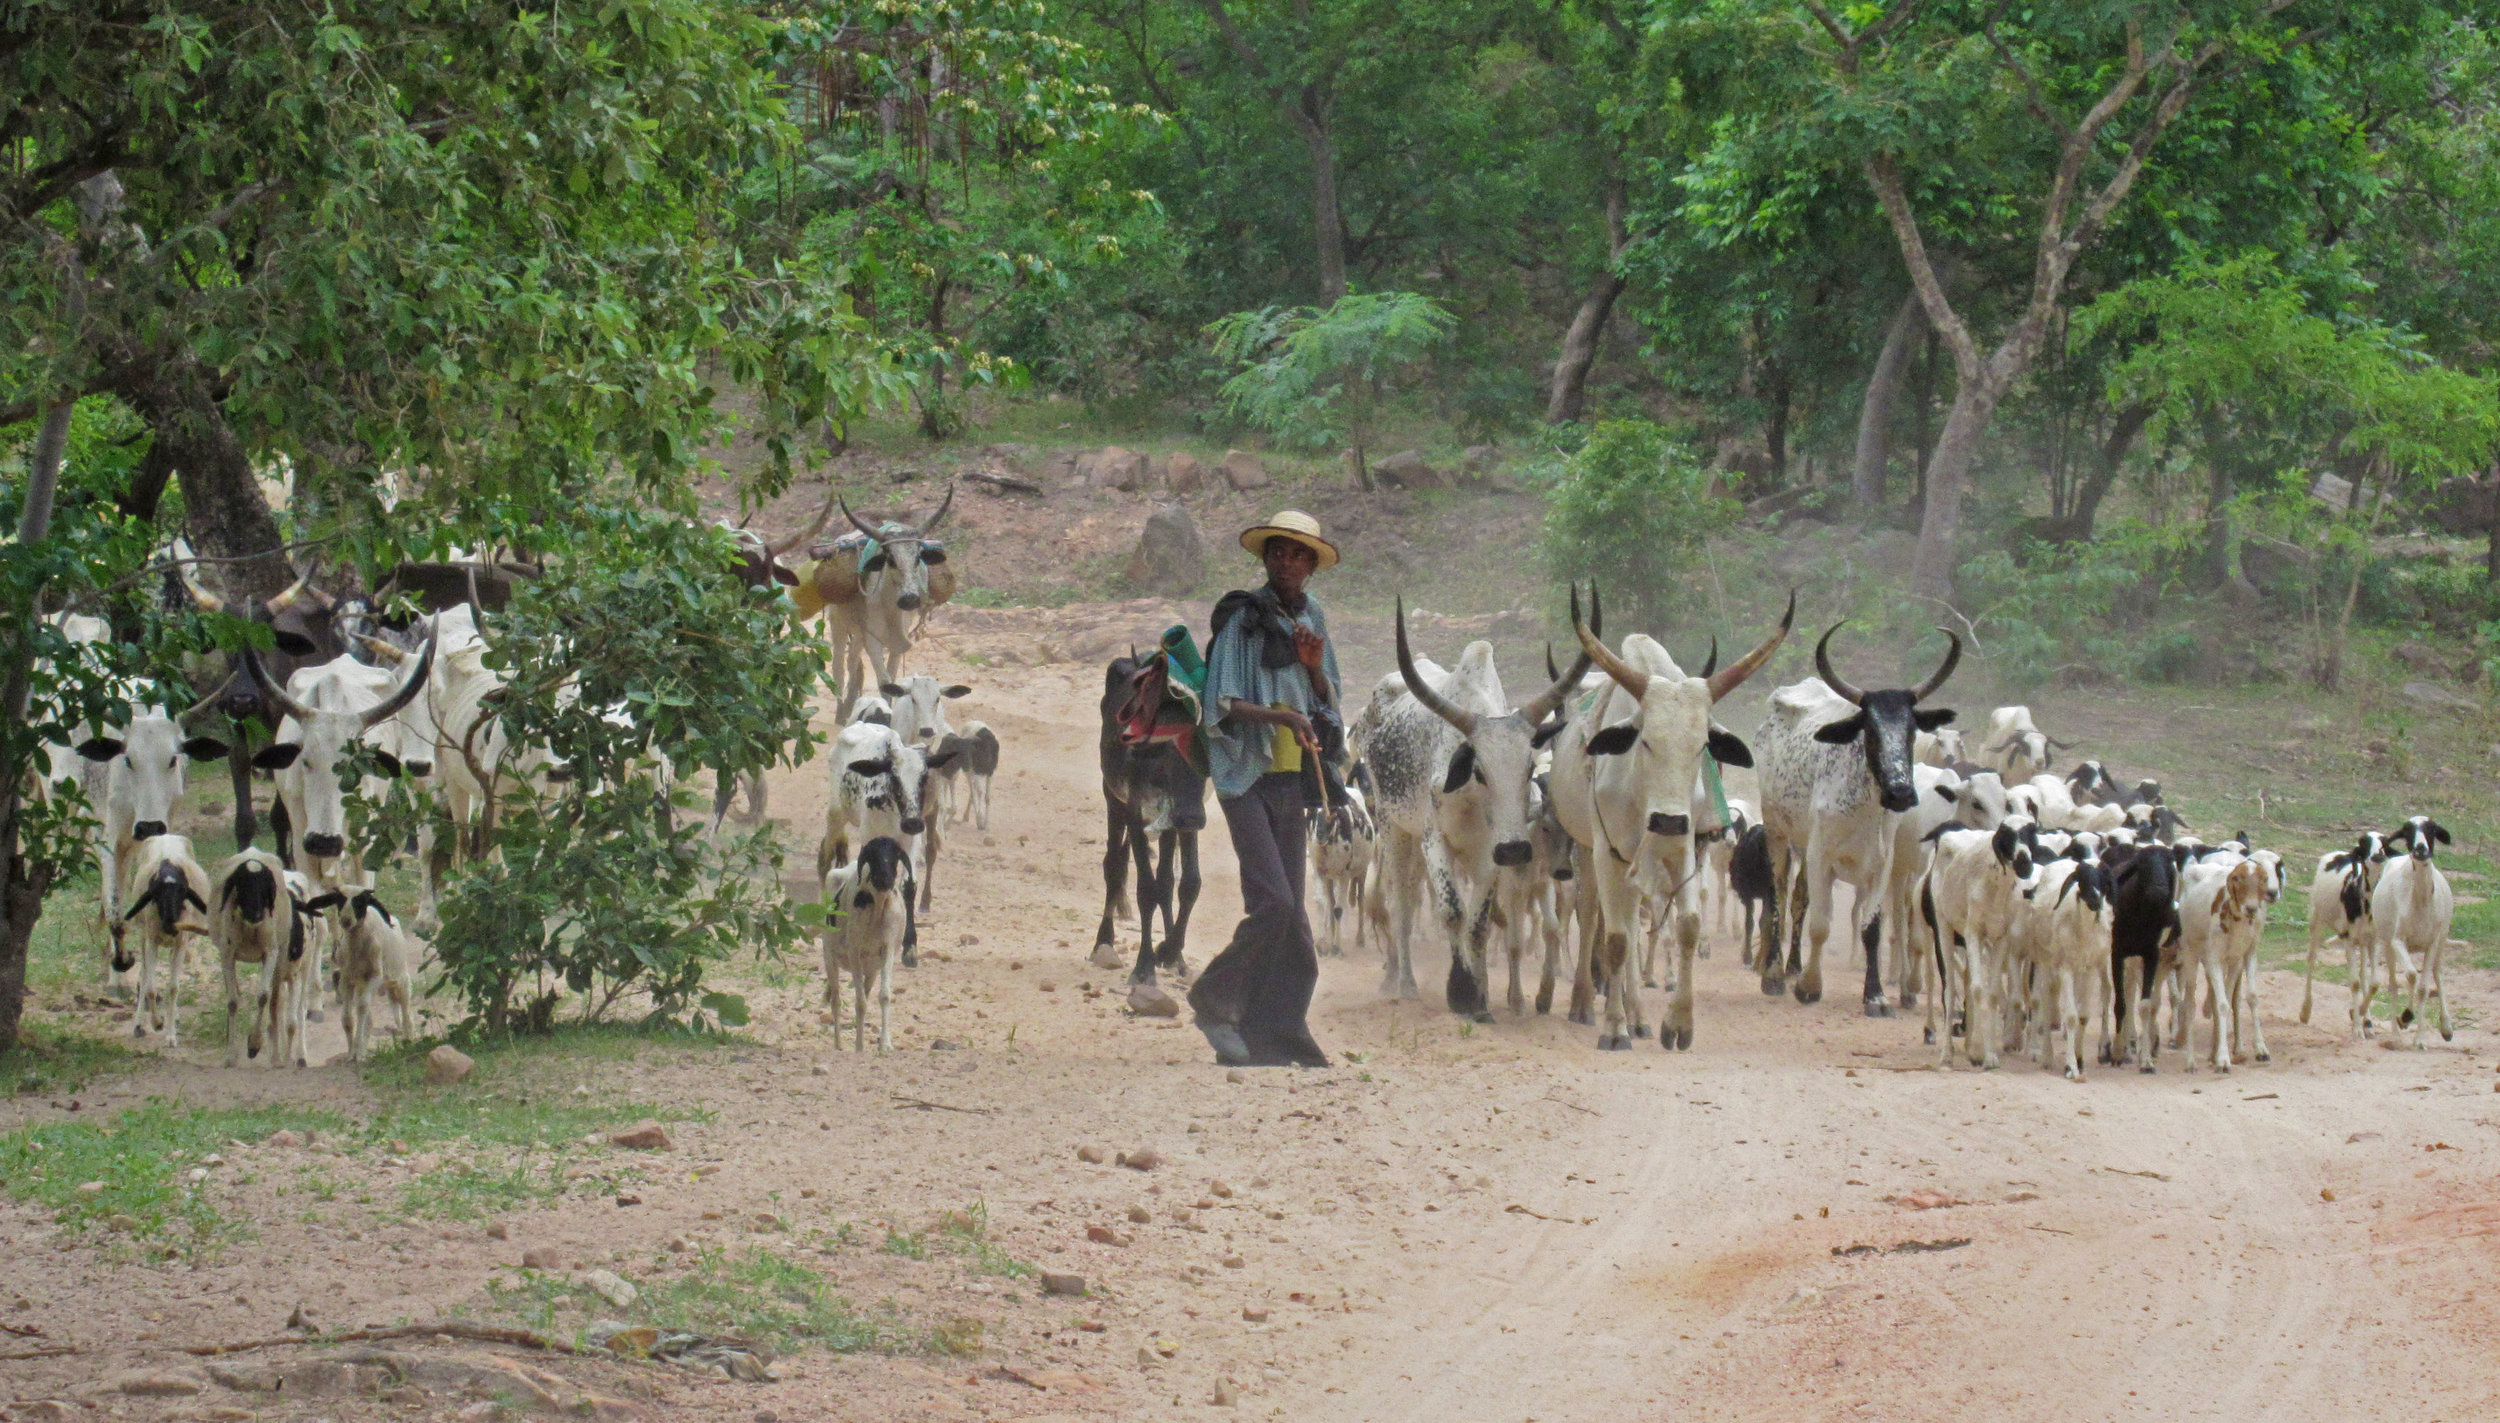 Meeting a Fulani herdsman on the road. Taraba State, Nigeria.